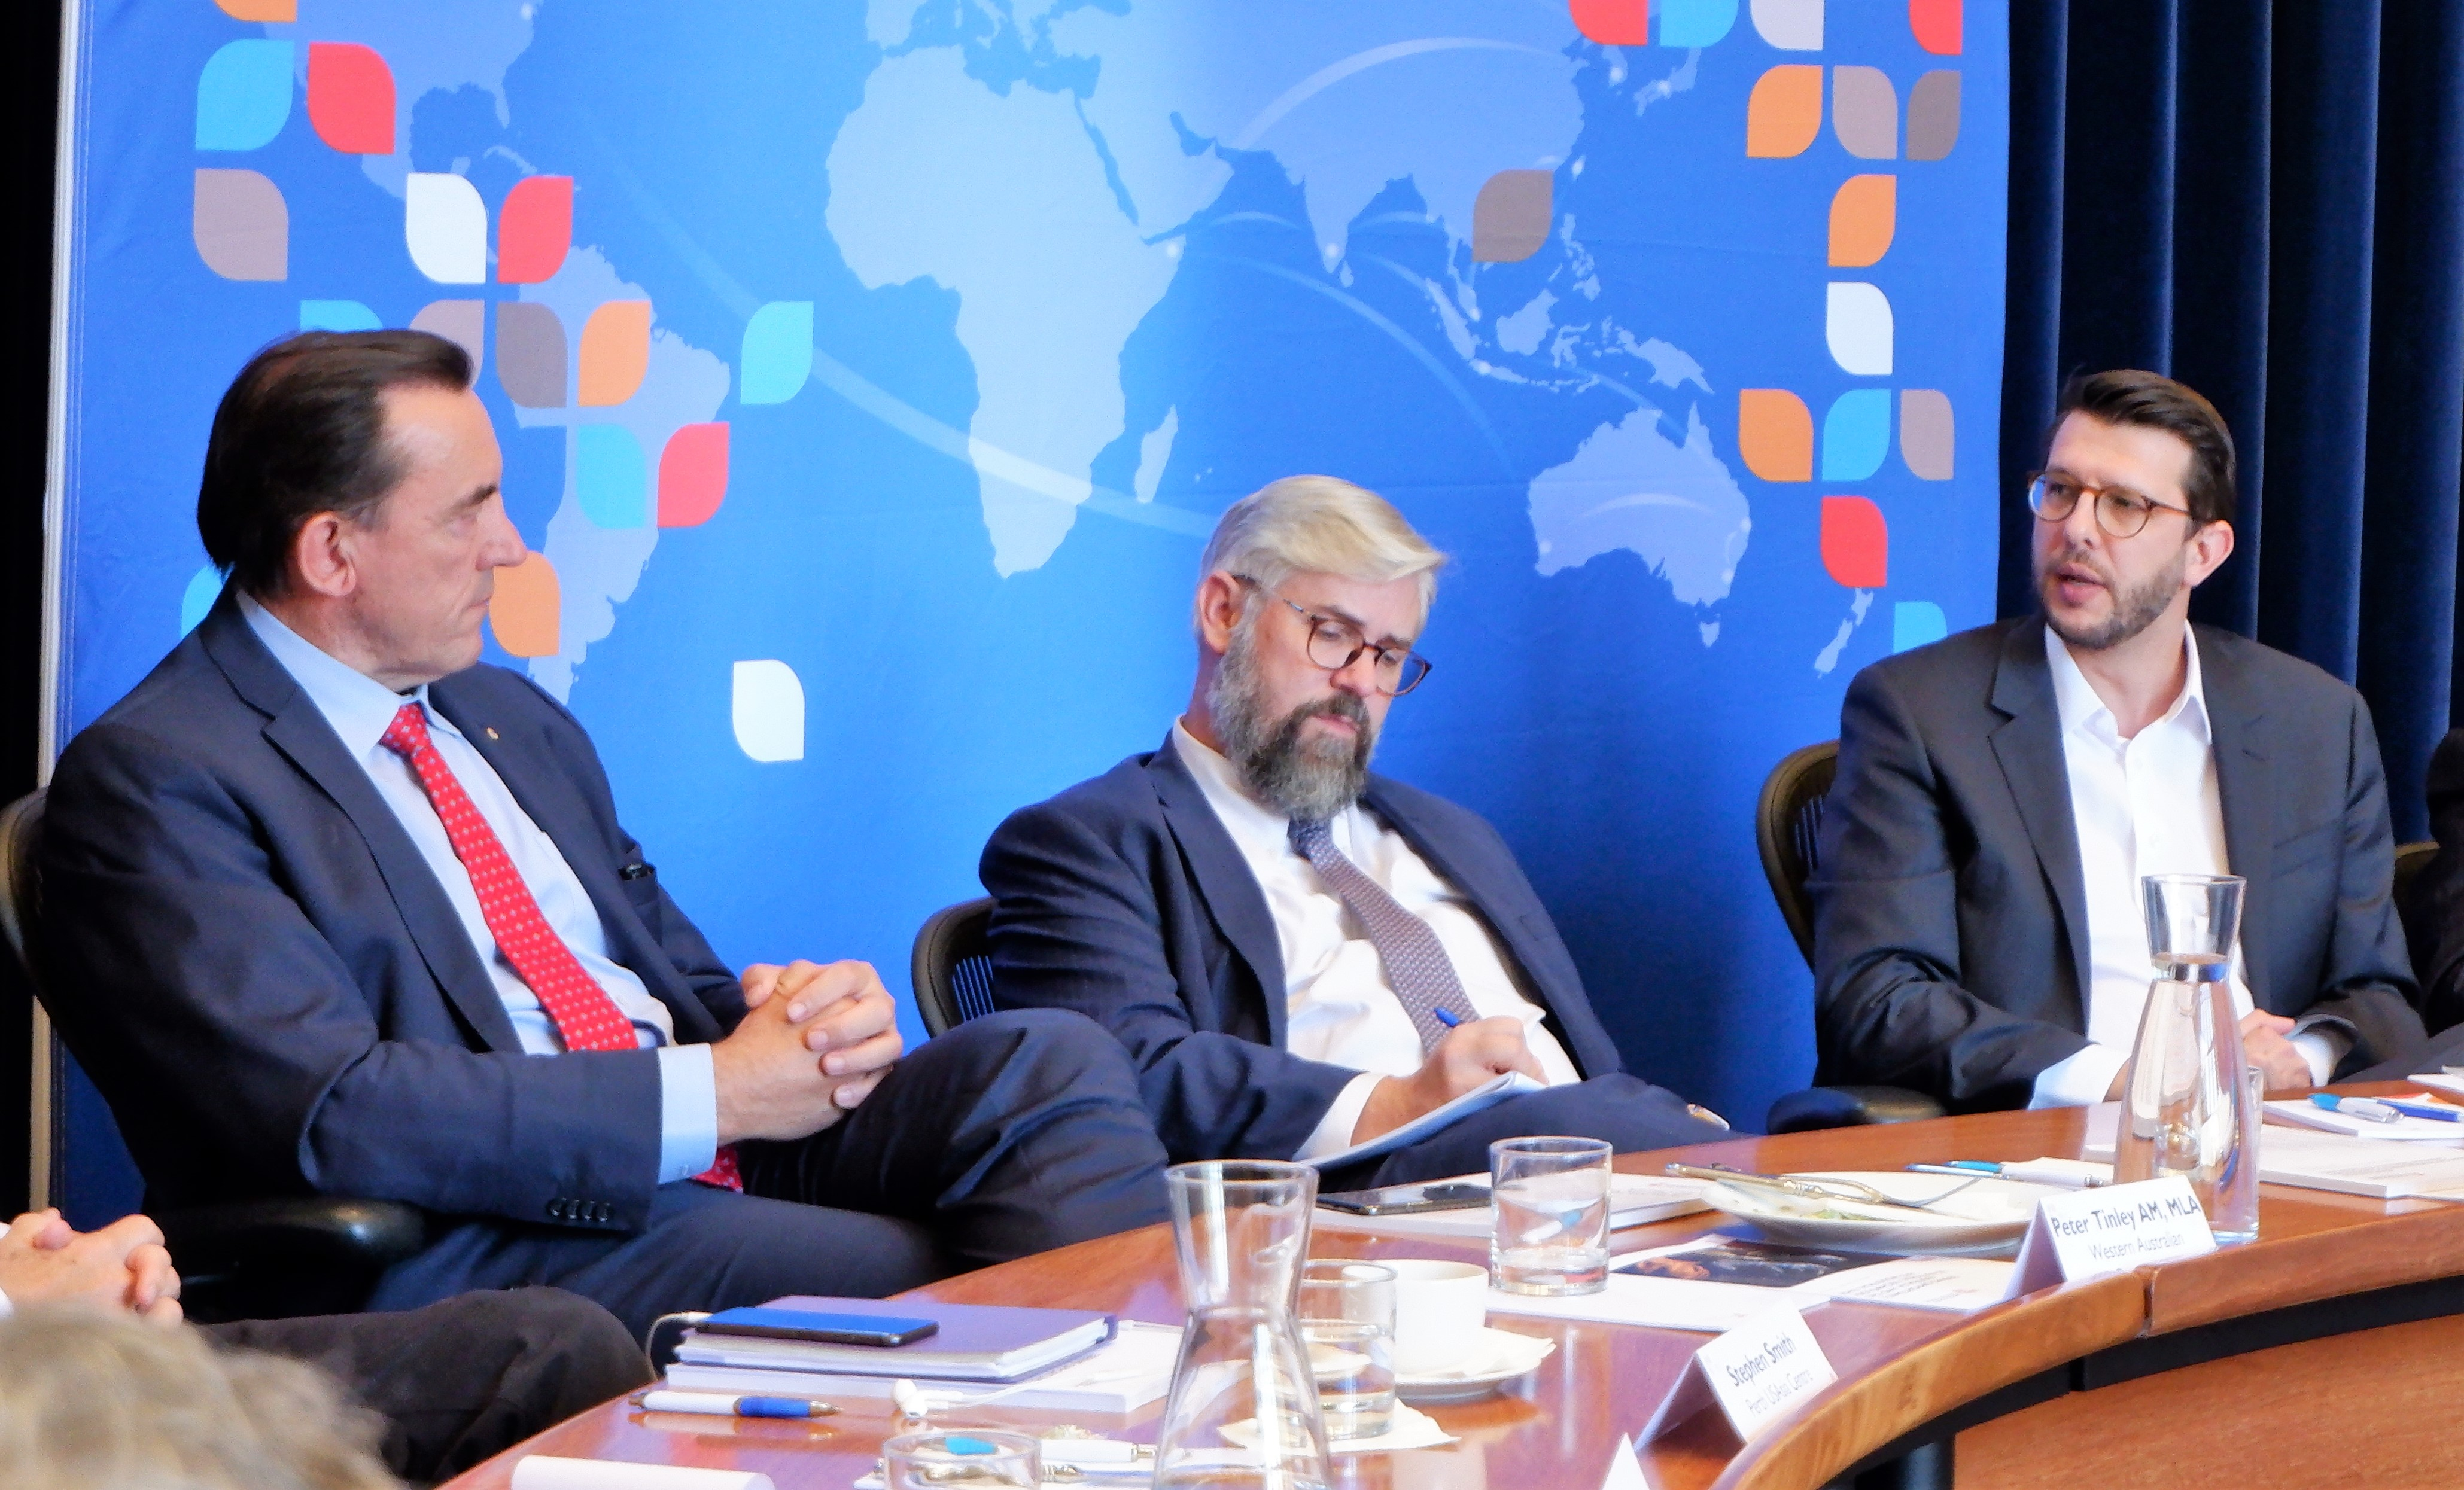 'Averting Crisis' authors lead roundtable discussion on US military and defence